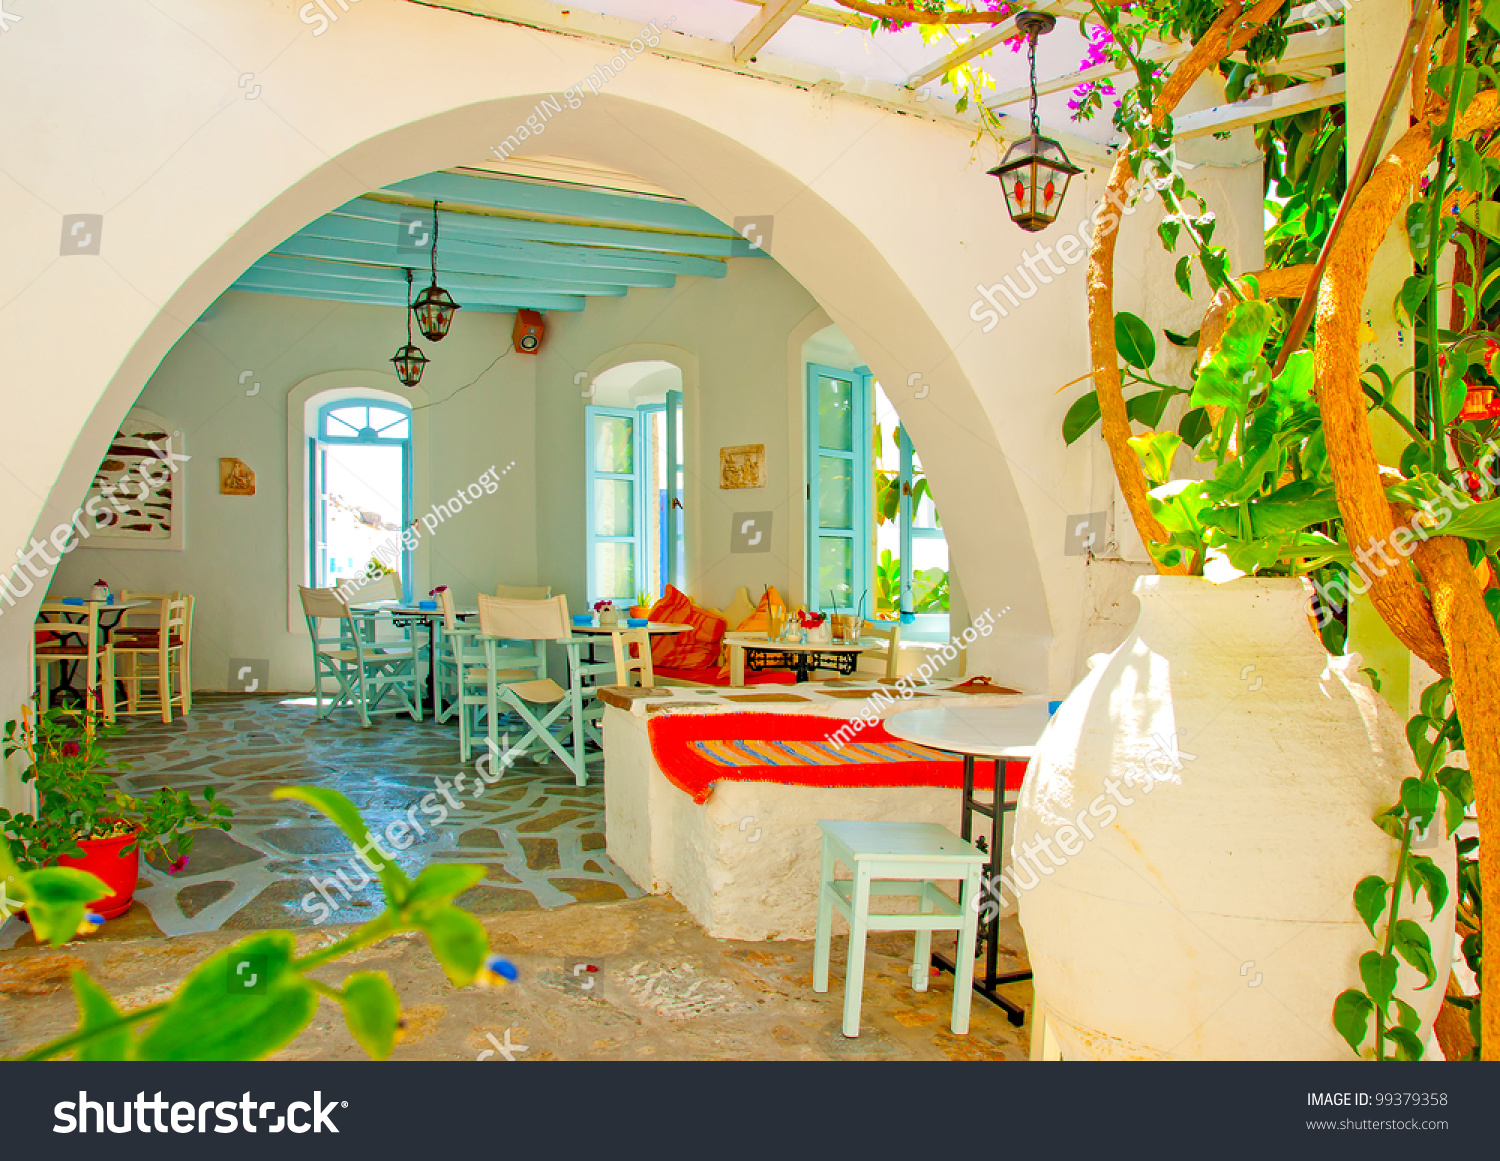 Old beautiful traditional house in chora the capital of amorgos island - Inside Of A Beautiful Cafe In An Old Traditional House In Chora The Capital Of Amorgos